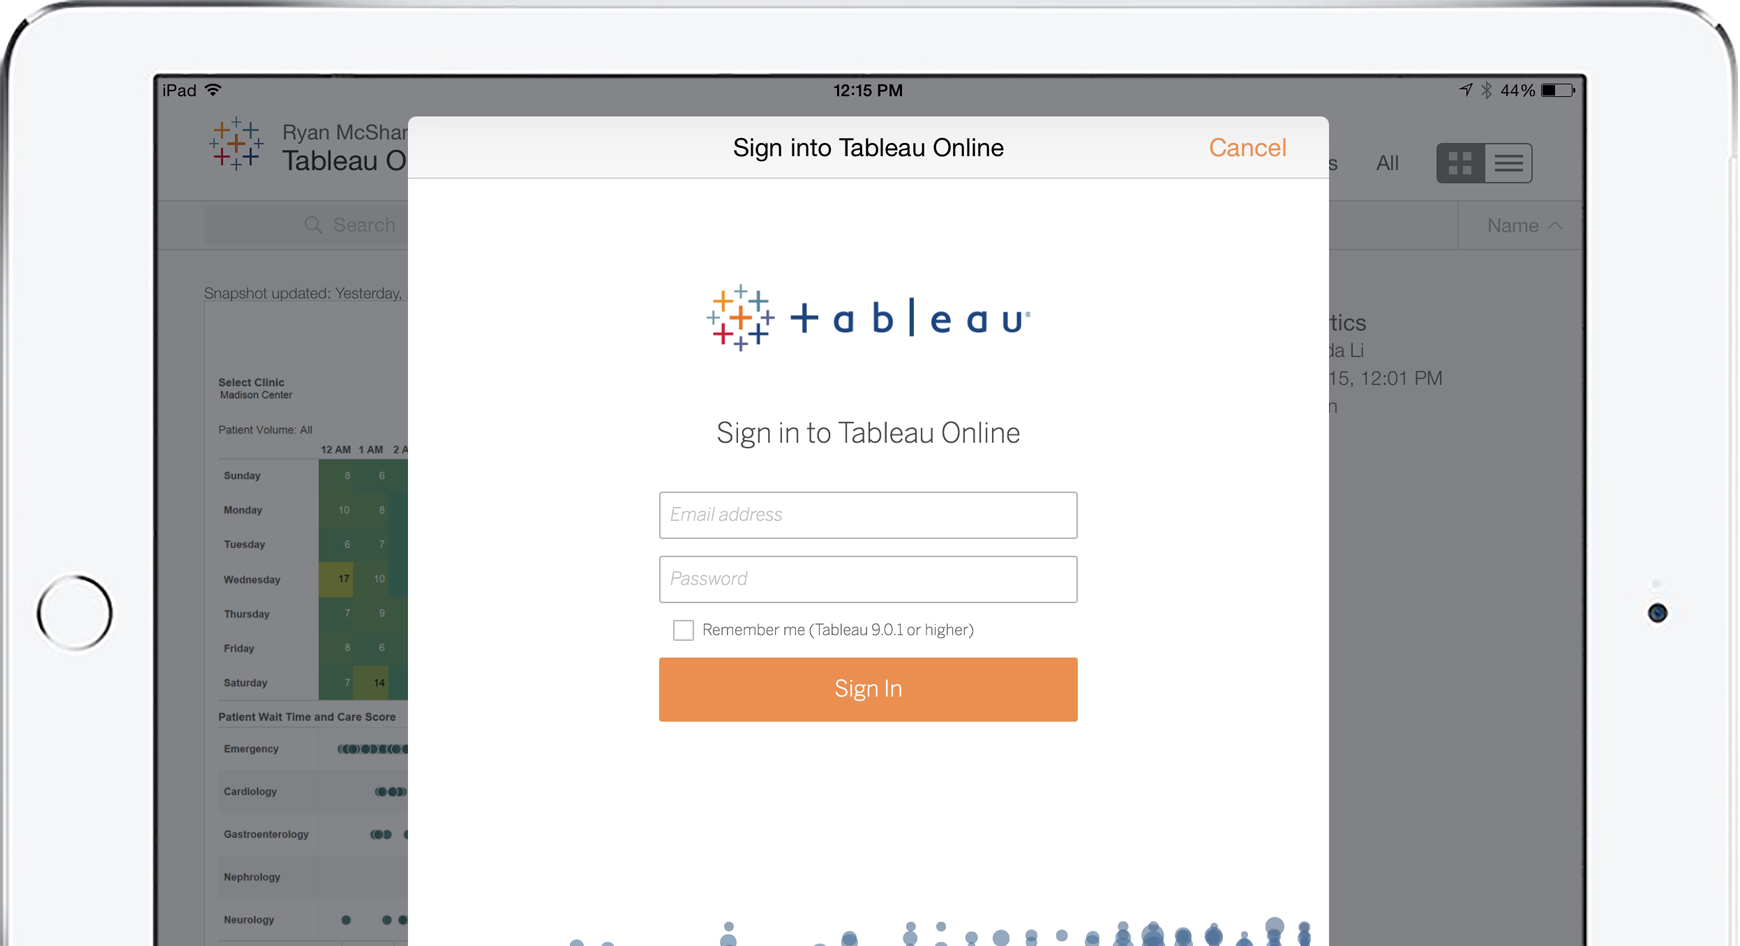 Stay secure on Tableau Mobile